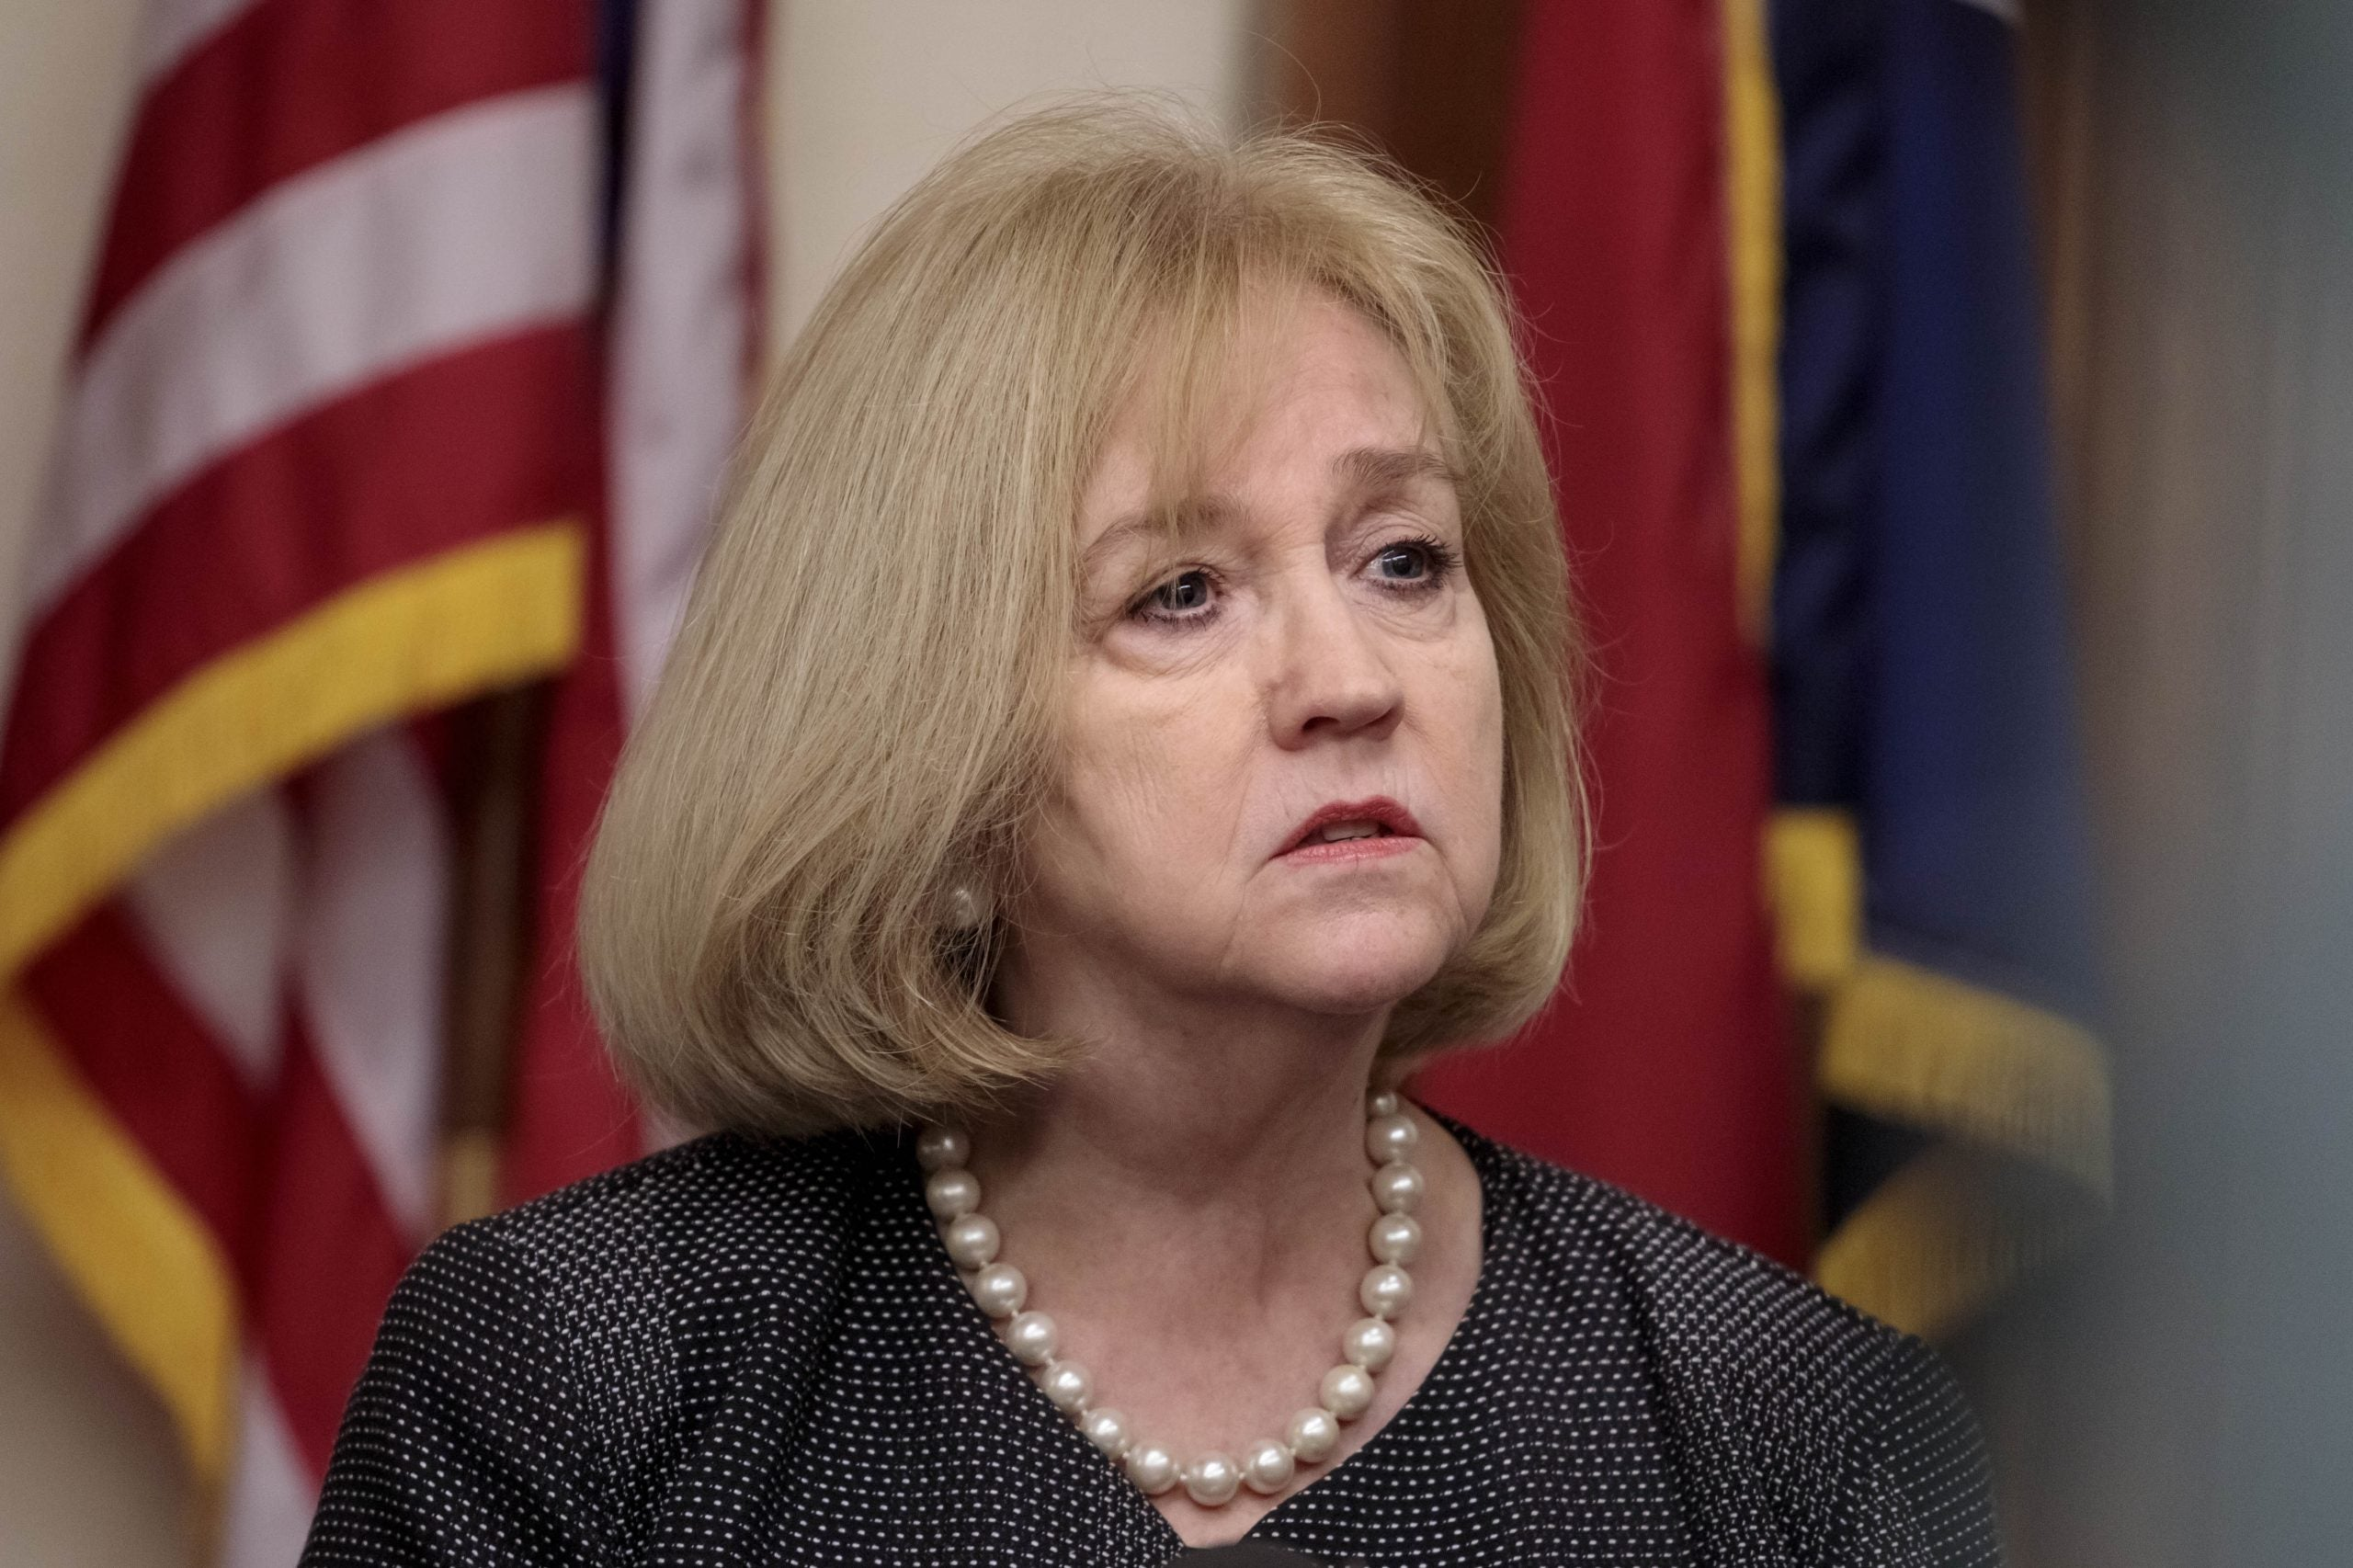 St. Louis Mayor Lyda Krewson Holds a Press Conference Following Protests